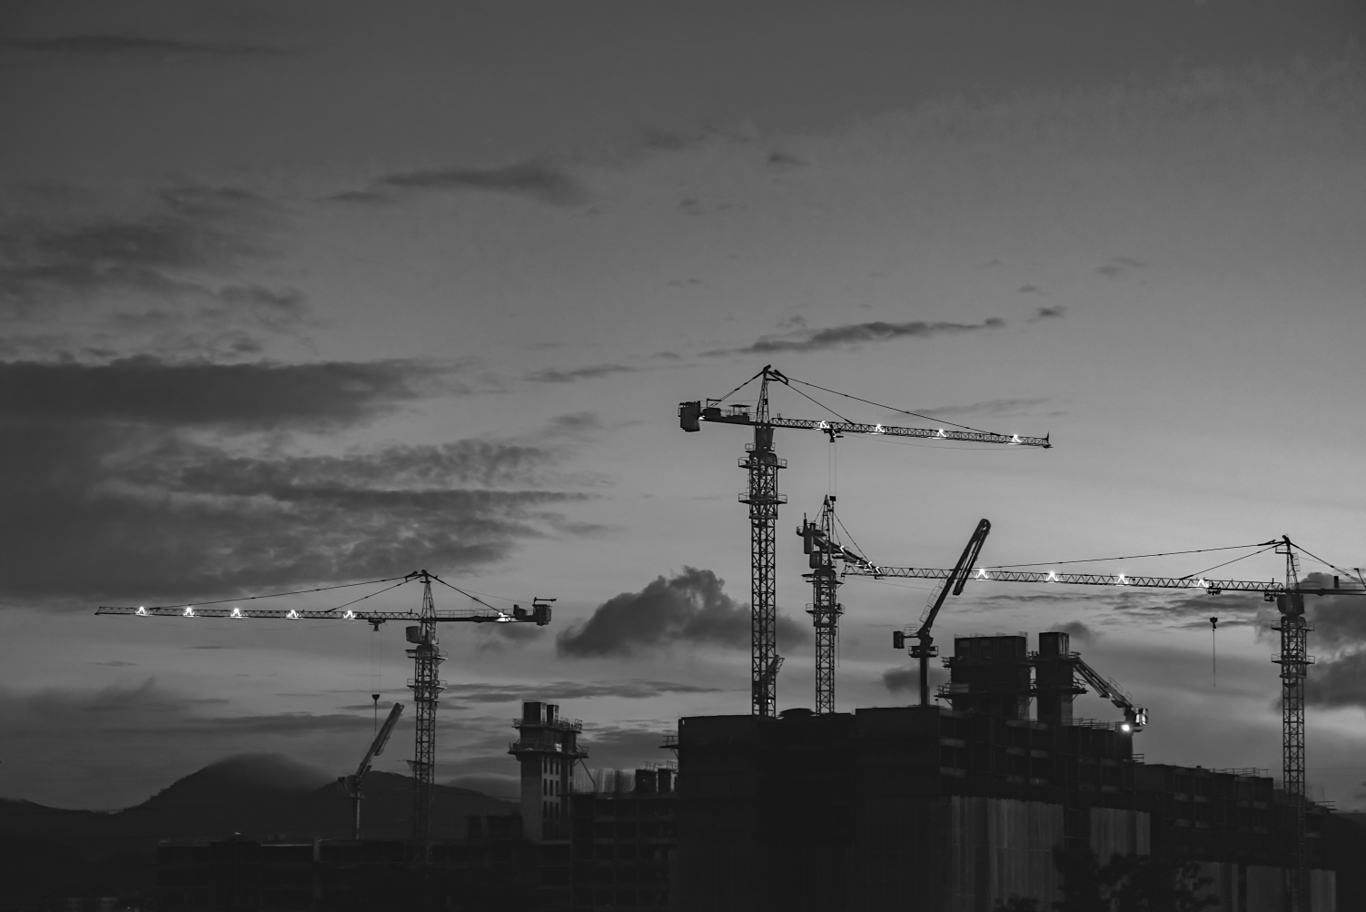 Cranes against a skyline at sunset